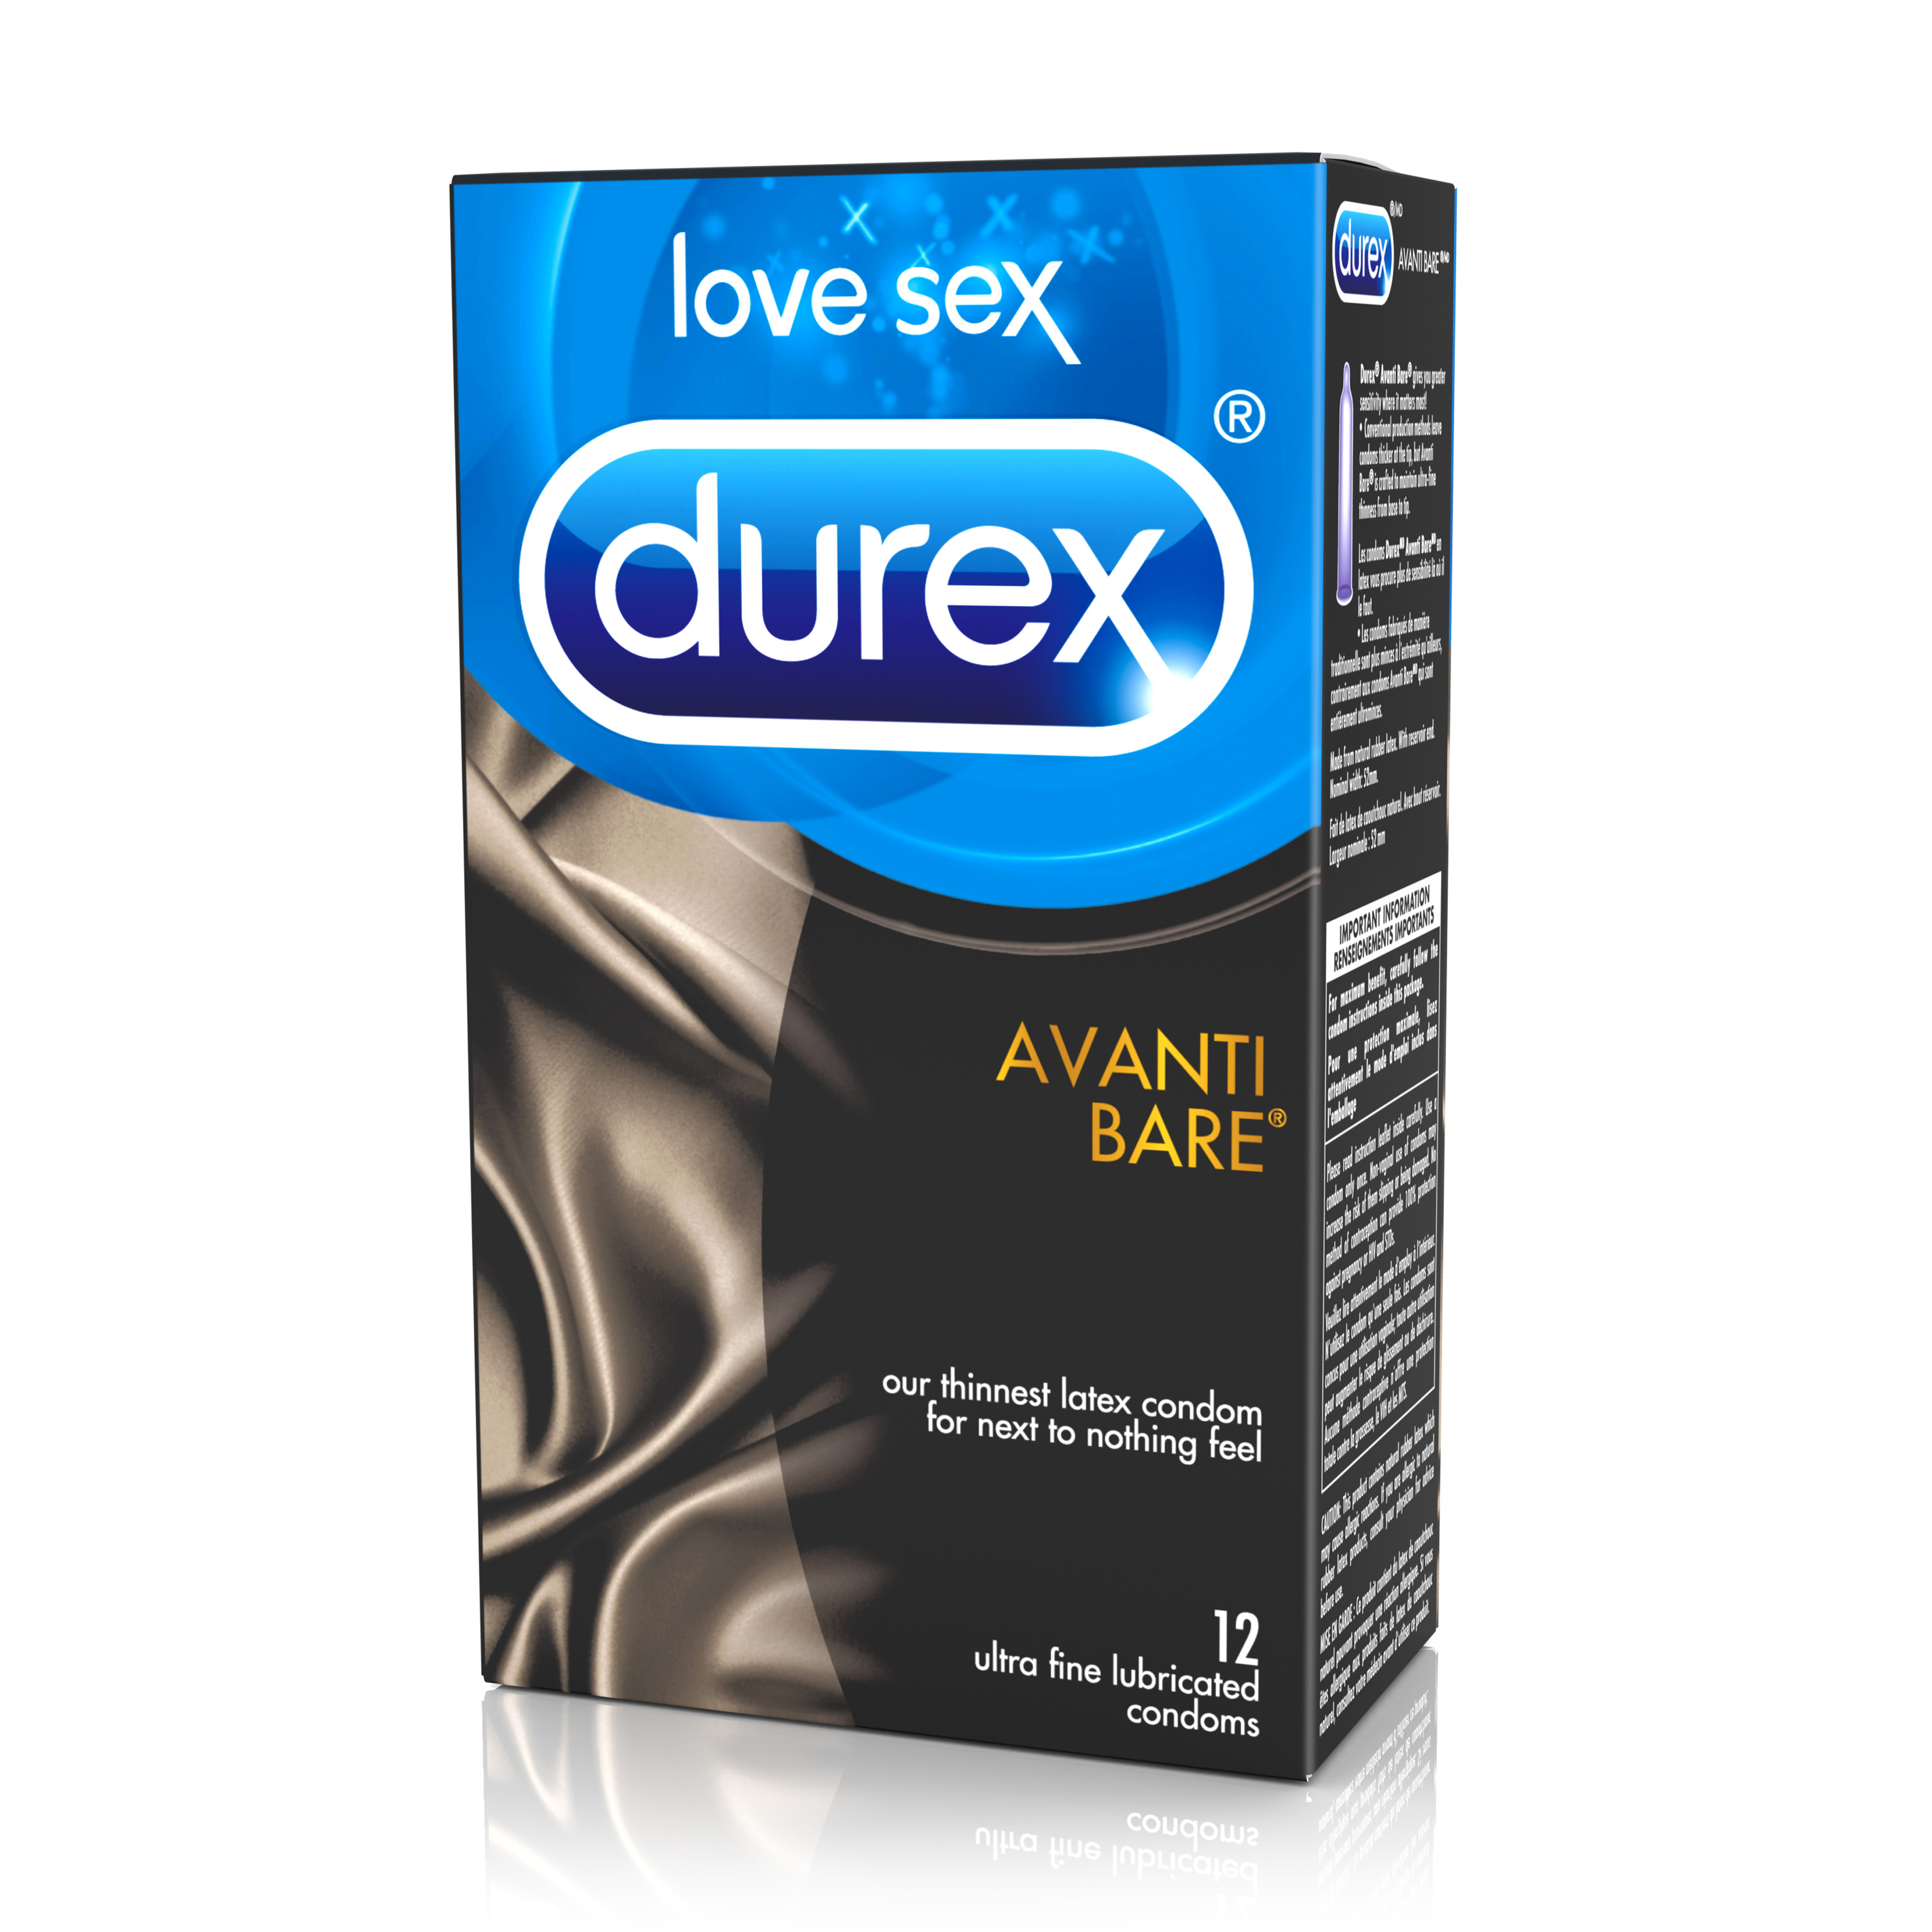 DUREX® Avanti Bare® Lubricated Condoms (Canada)